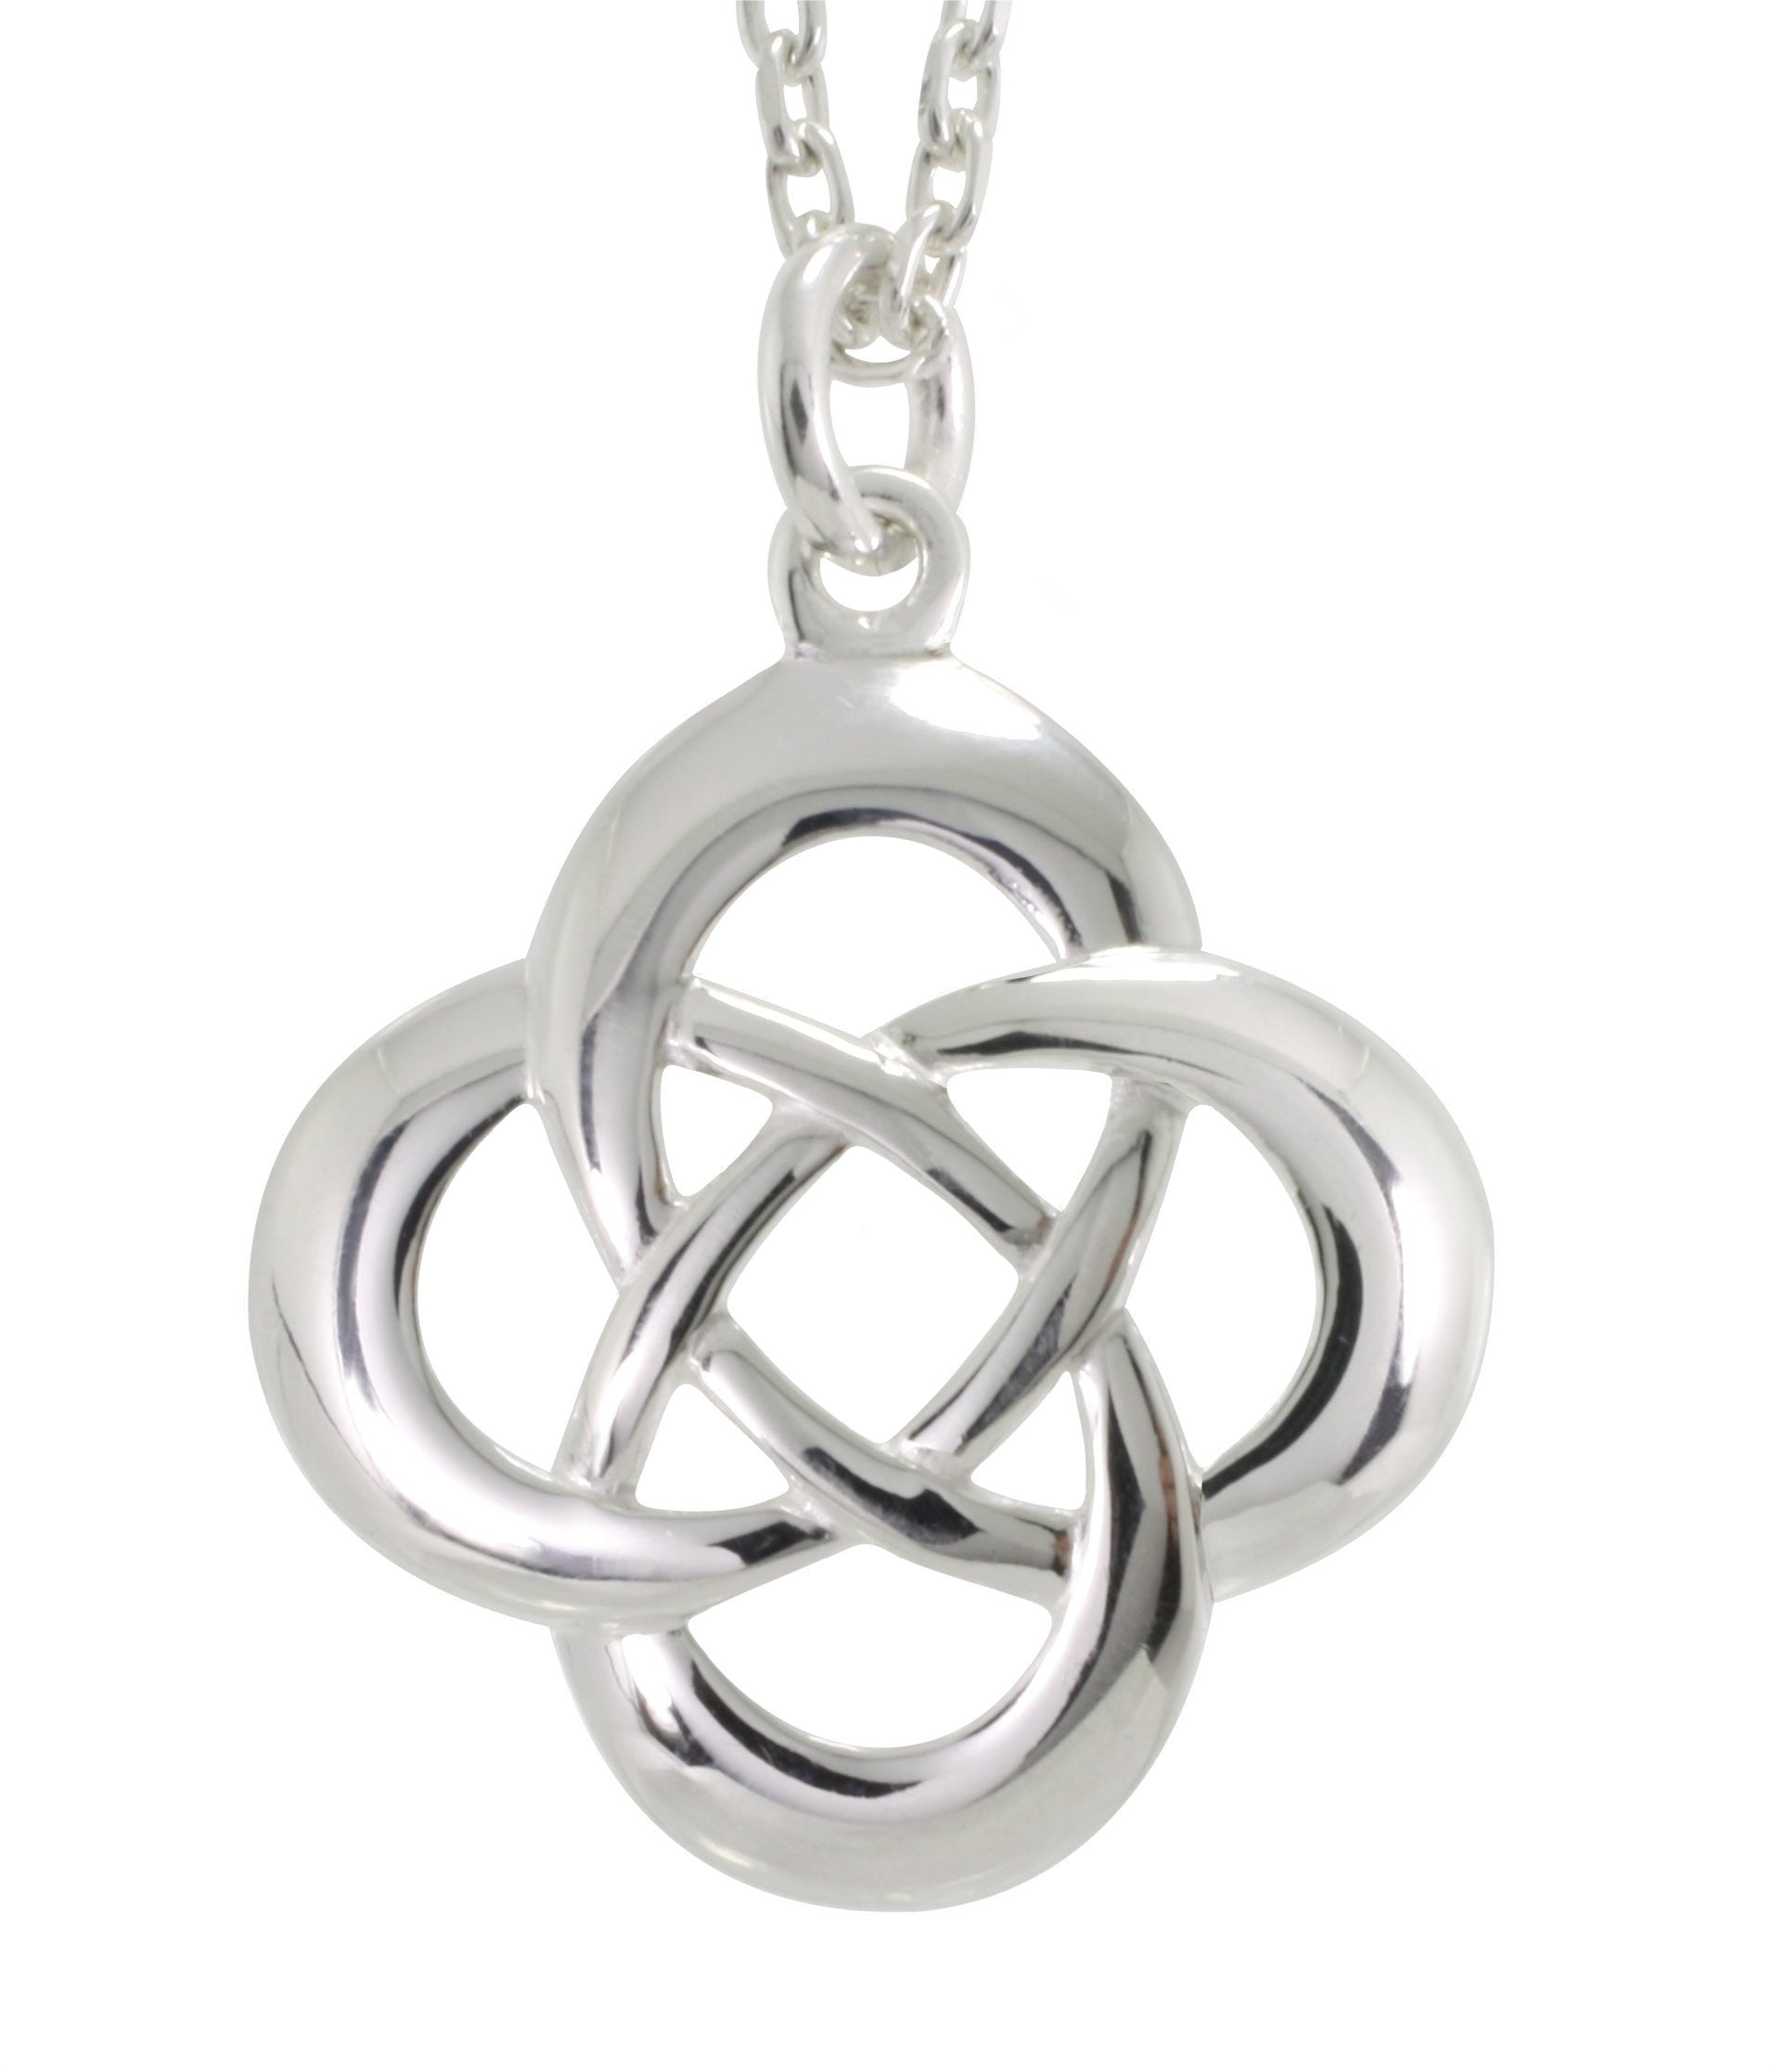 over on silver cgc watches necklace inch celtic knot overstock shipping jewelry eternal orders pendant free product